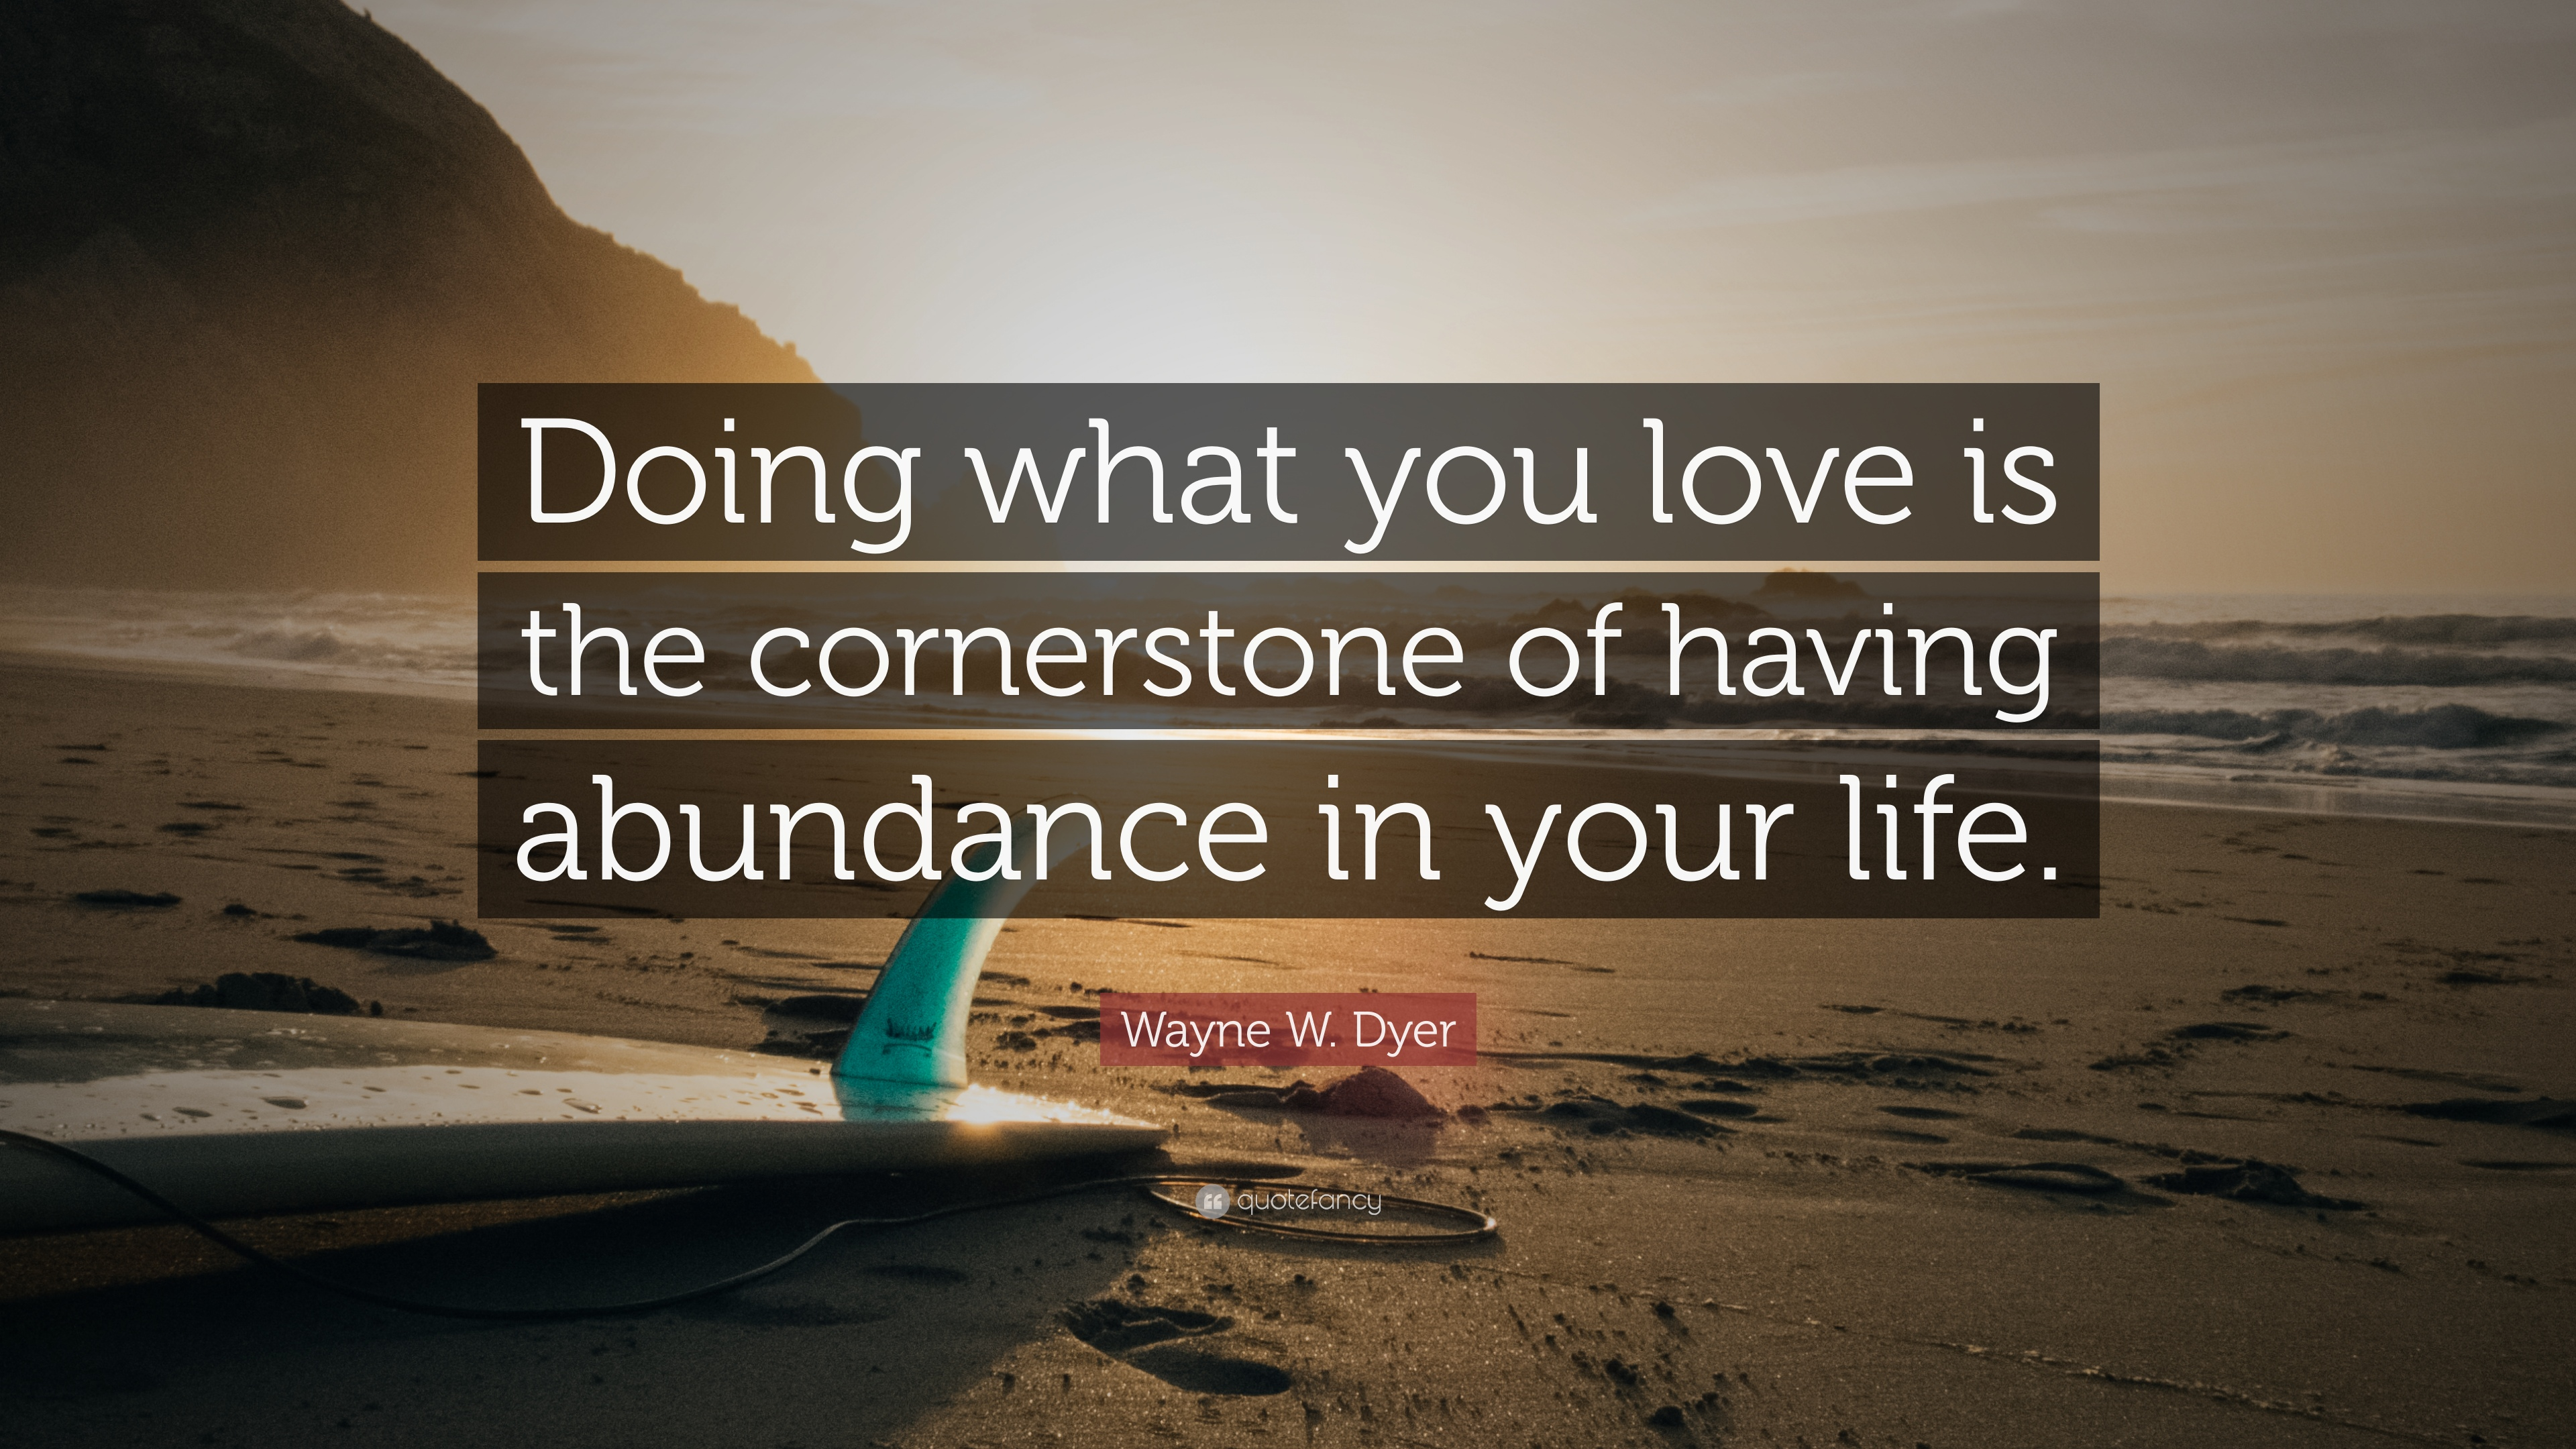 Beautiful Spiritual Quotes: U201cDoing What You Love Is The Cornerstone Of Having  Abundance In Your